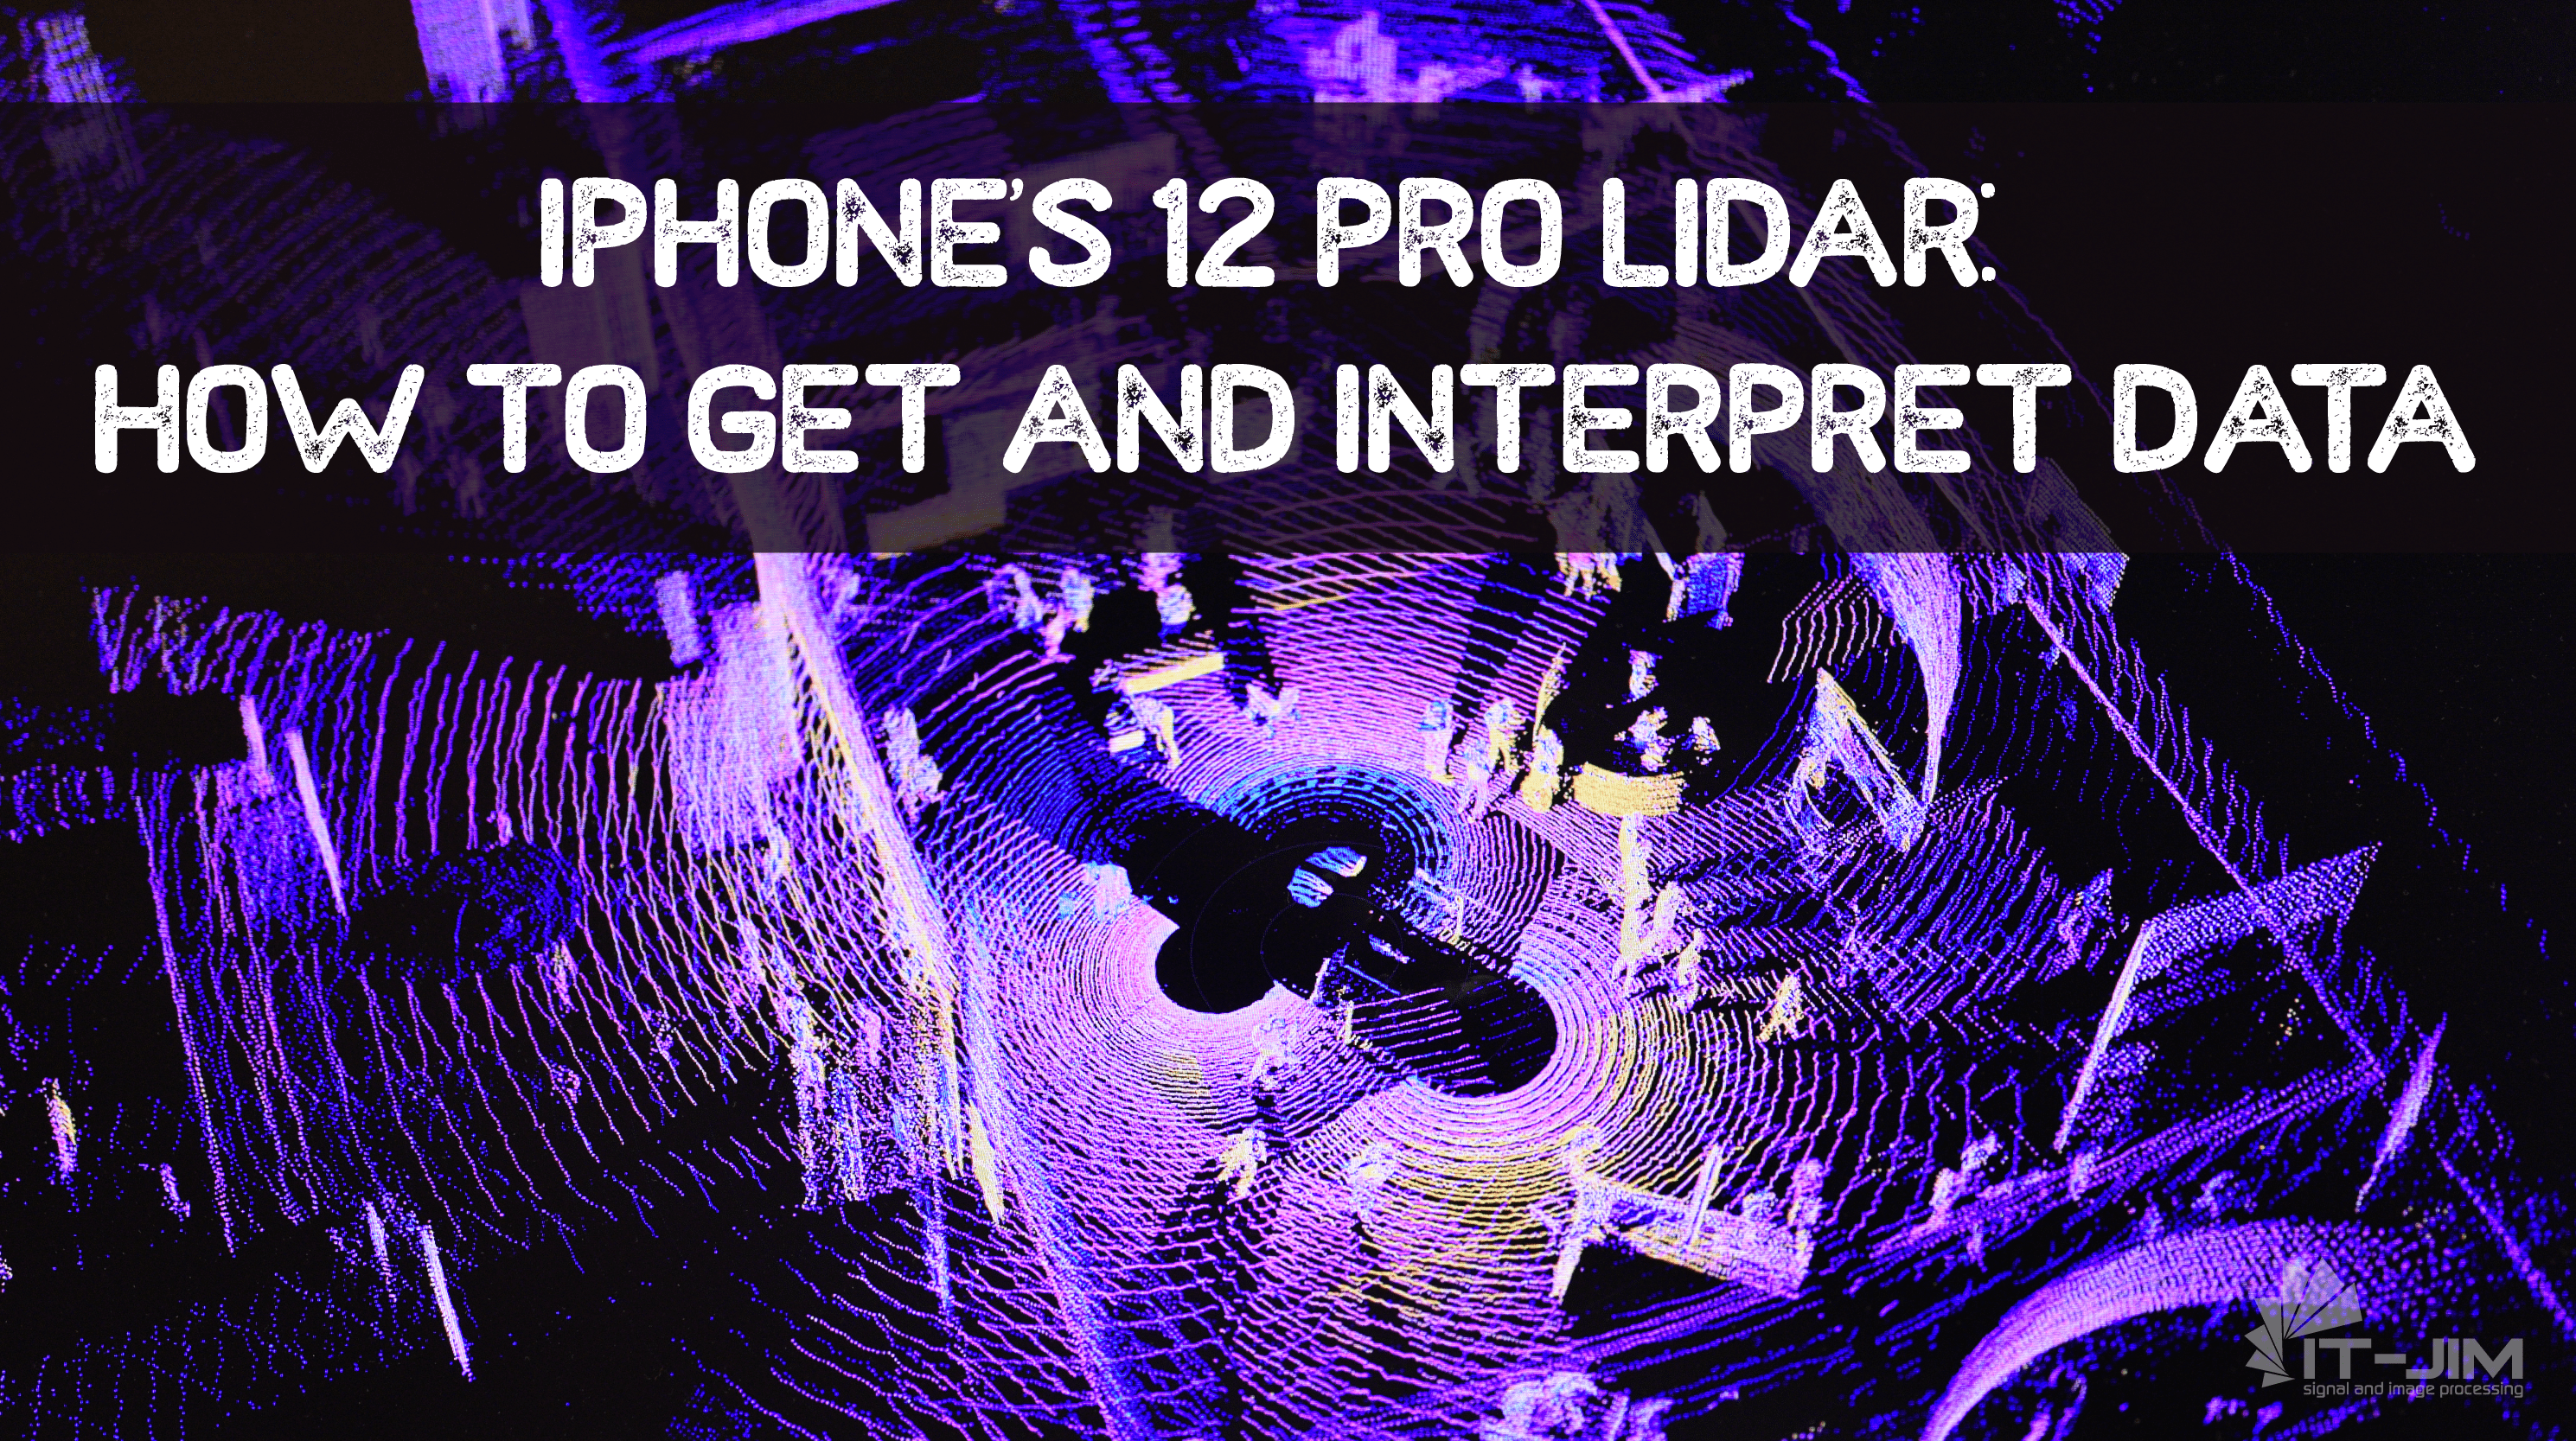 iPhone's 12 PRO LiDAR: How to Get and Interpret Data